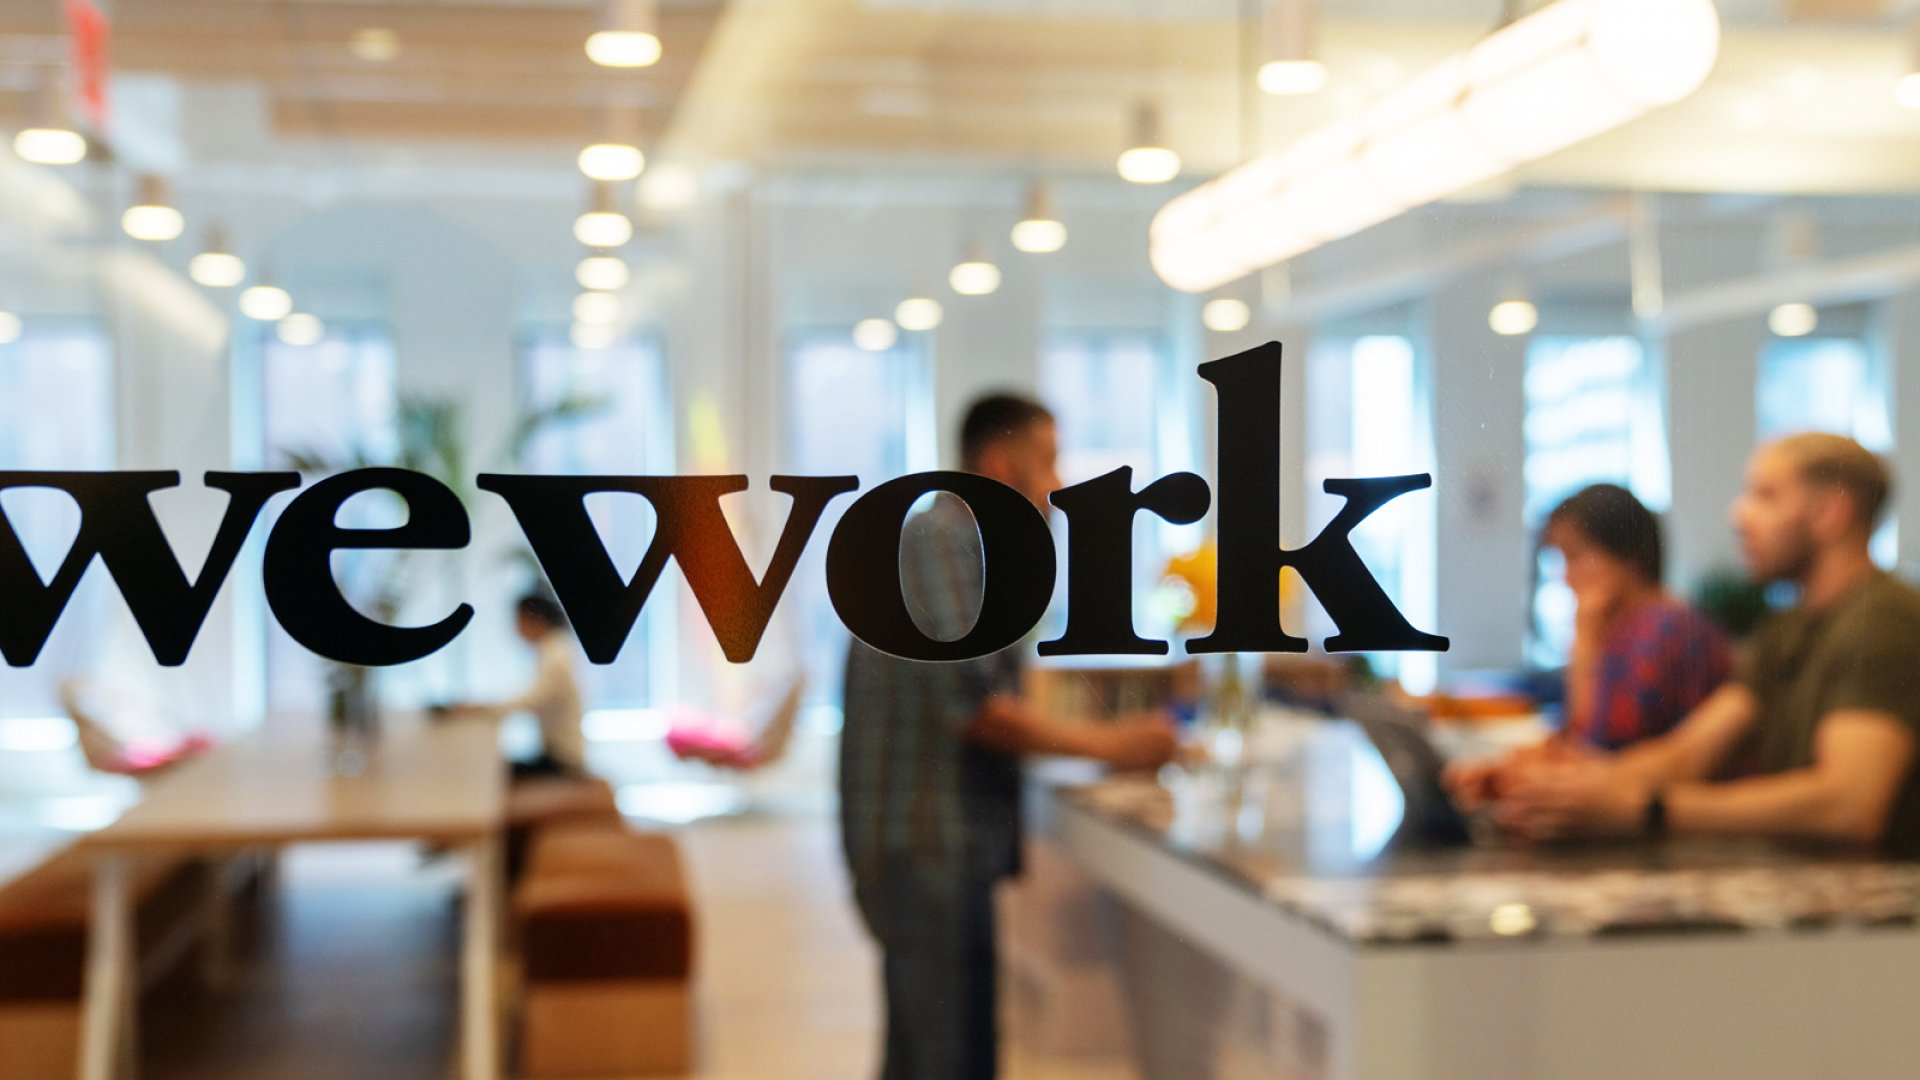 WeWork May Cut Its Valuation by More Than Half to $20 Billion, a Move That Could Delay Its IPO